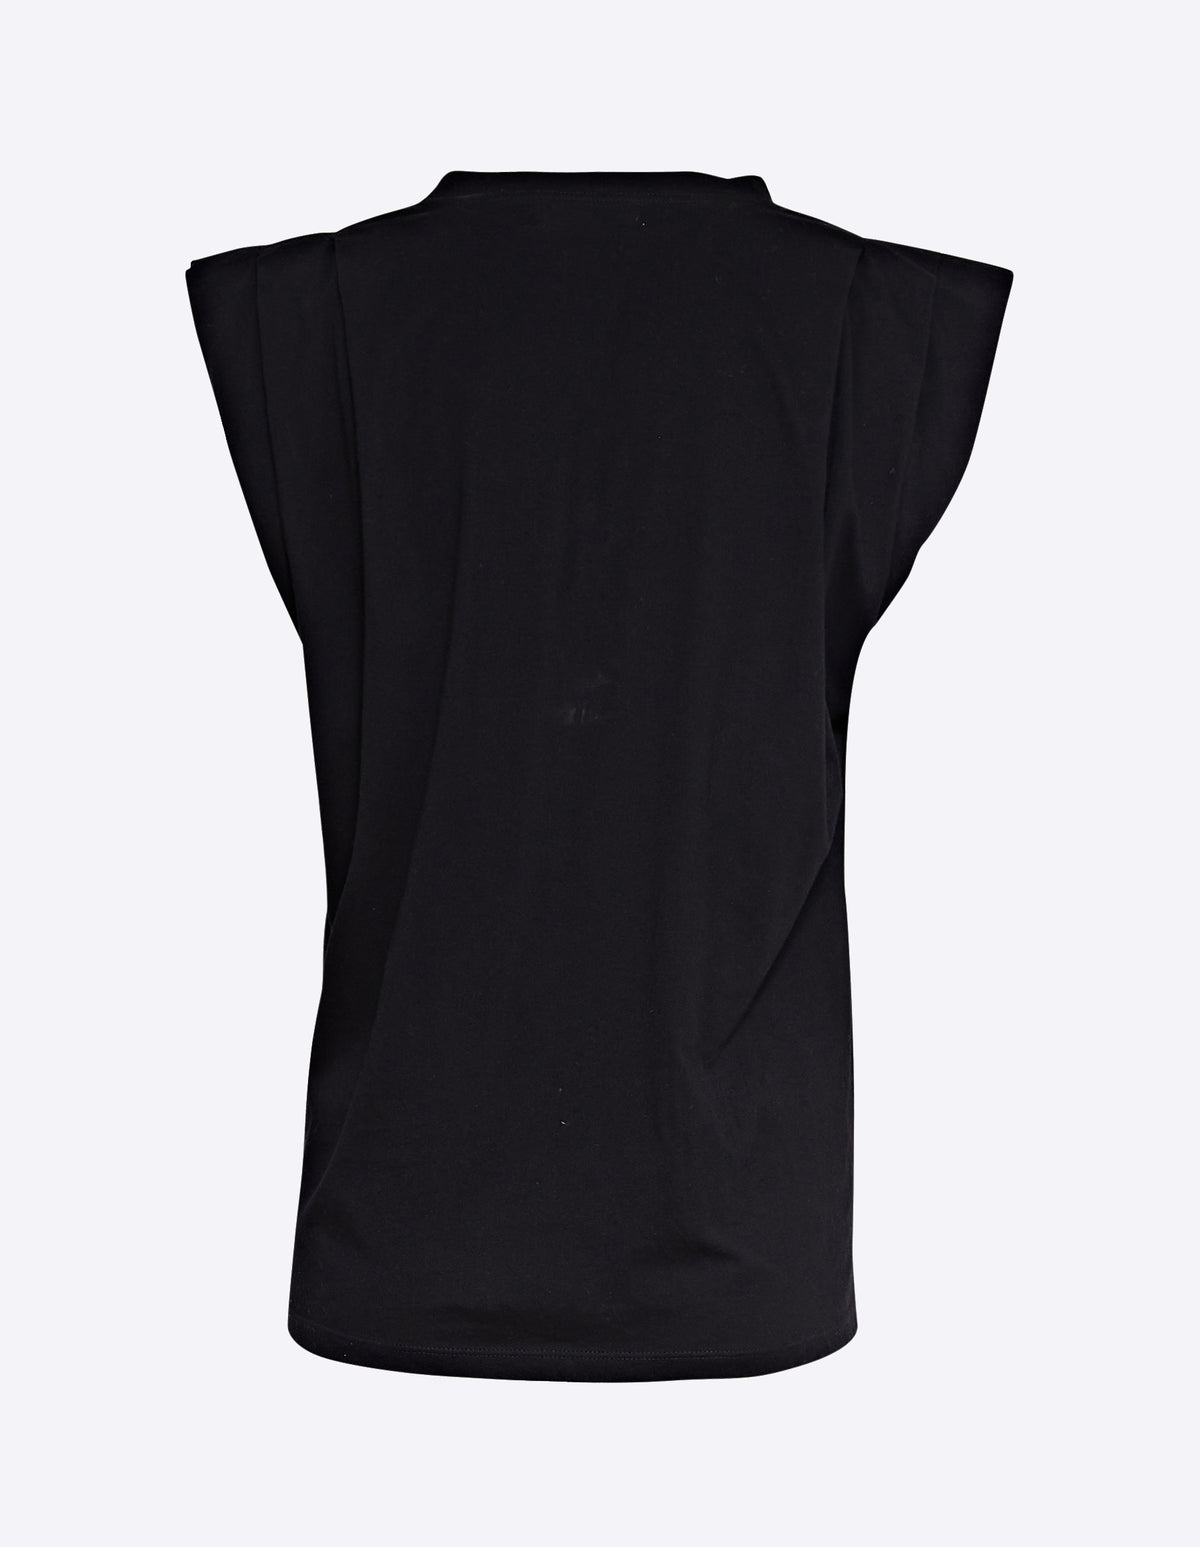 KASKADE TOP | BLACK